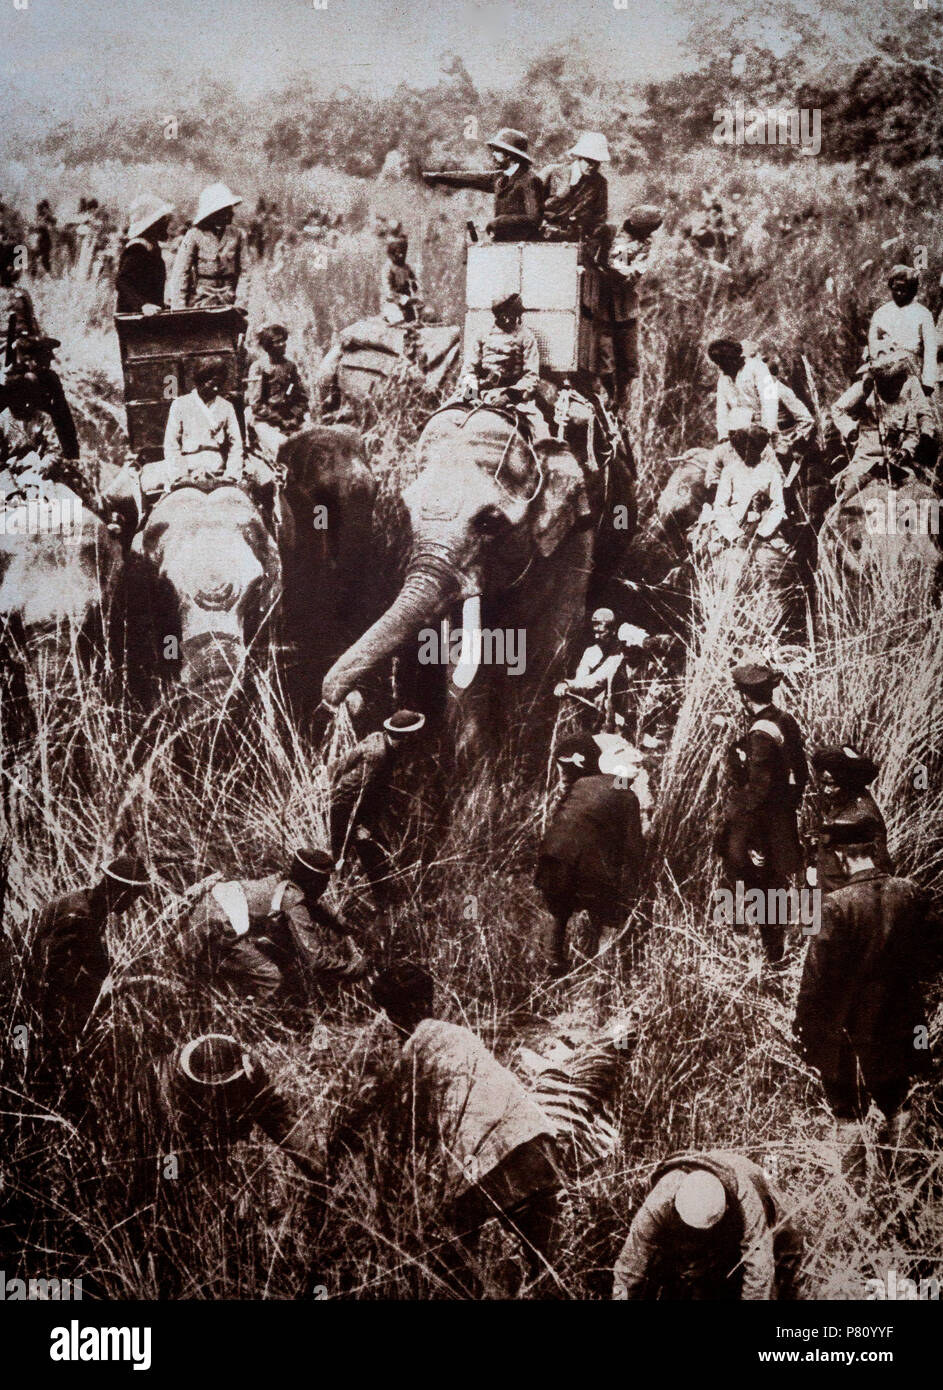 King George V took a brief holiday in Nepal spending time on elephant back whilst tiger hunting, following the Delhi Durbar of 1911. George V entering Delhi, December 7, 1911, the first time an a British monarch had come to India to be received as Emperor by Indian subjects.  The Delhi Durbar of 1911, meaning 'Court of Delhi', was an Indian imperial style mass assembly organised by the British at Coronation Park, Delhi, India, to mark the succession of an Emperor or Empress of India. - Stock Image